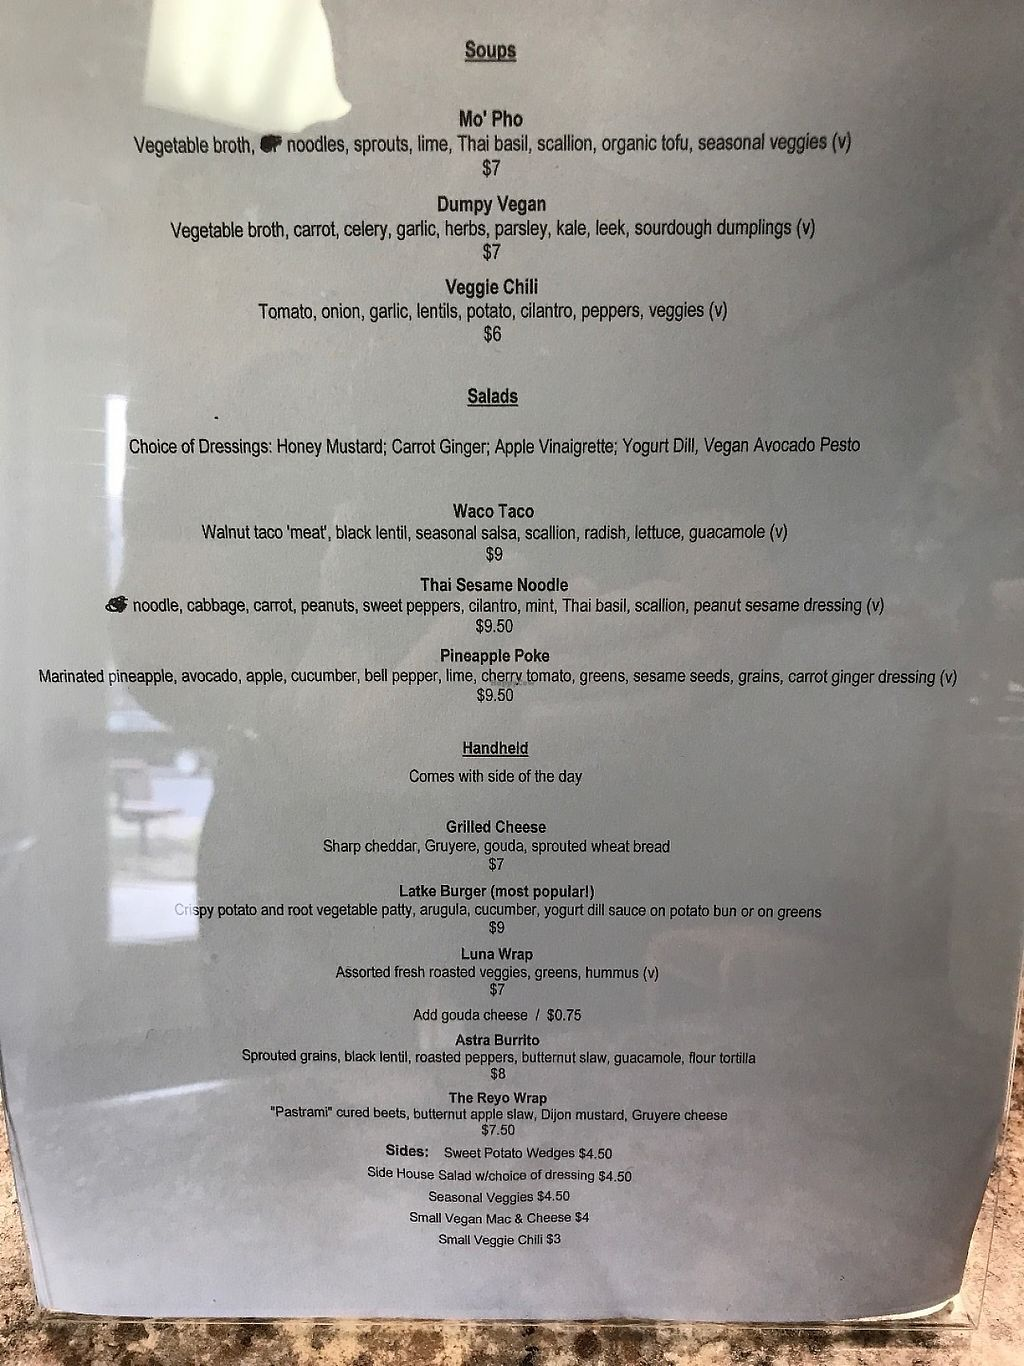 """Photo of Clean Roots Vegetarian Cuisine  by <a href=""""/members/profile/dragonflytotem"""">dragonflytotem</a> <br/>Current menu, eat in or take out <br/> May 26, 2017  - <a href='/contact/abuse/image/92842/262738'>Report</a>"""